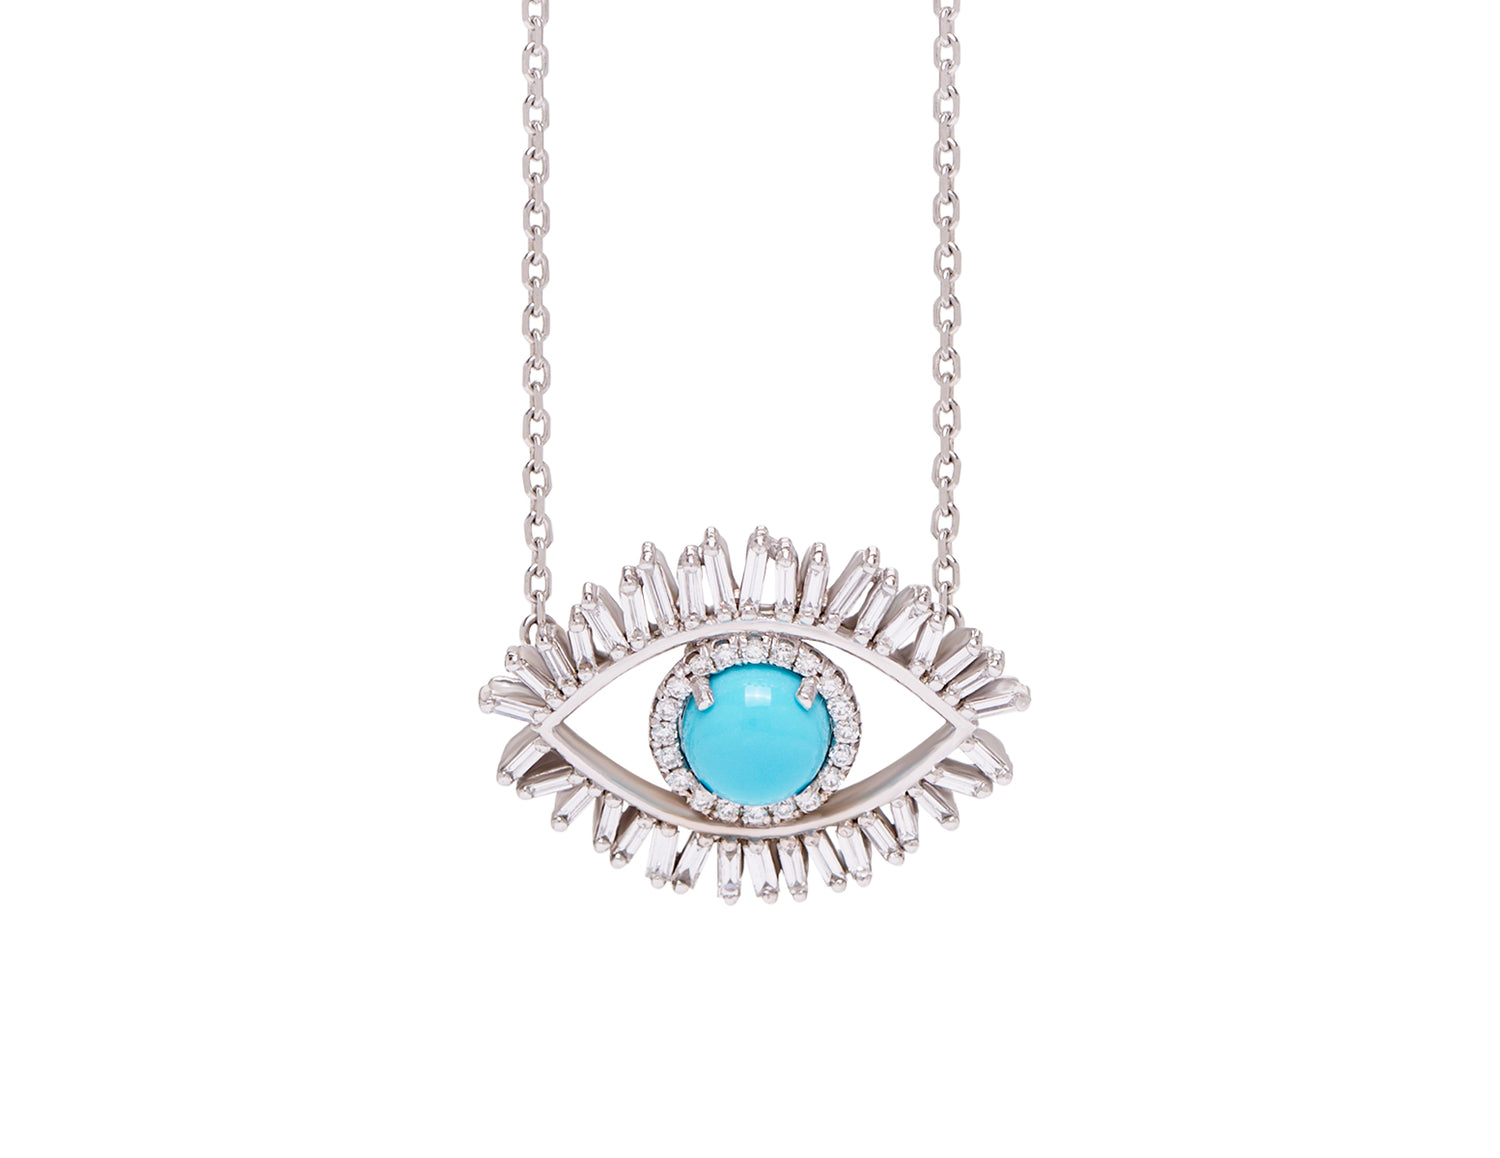 18K MEDIUM WHITE GOLD EVIL EYE FIREWORKS PENDANT